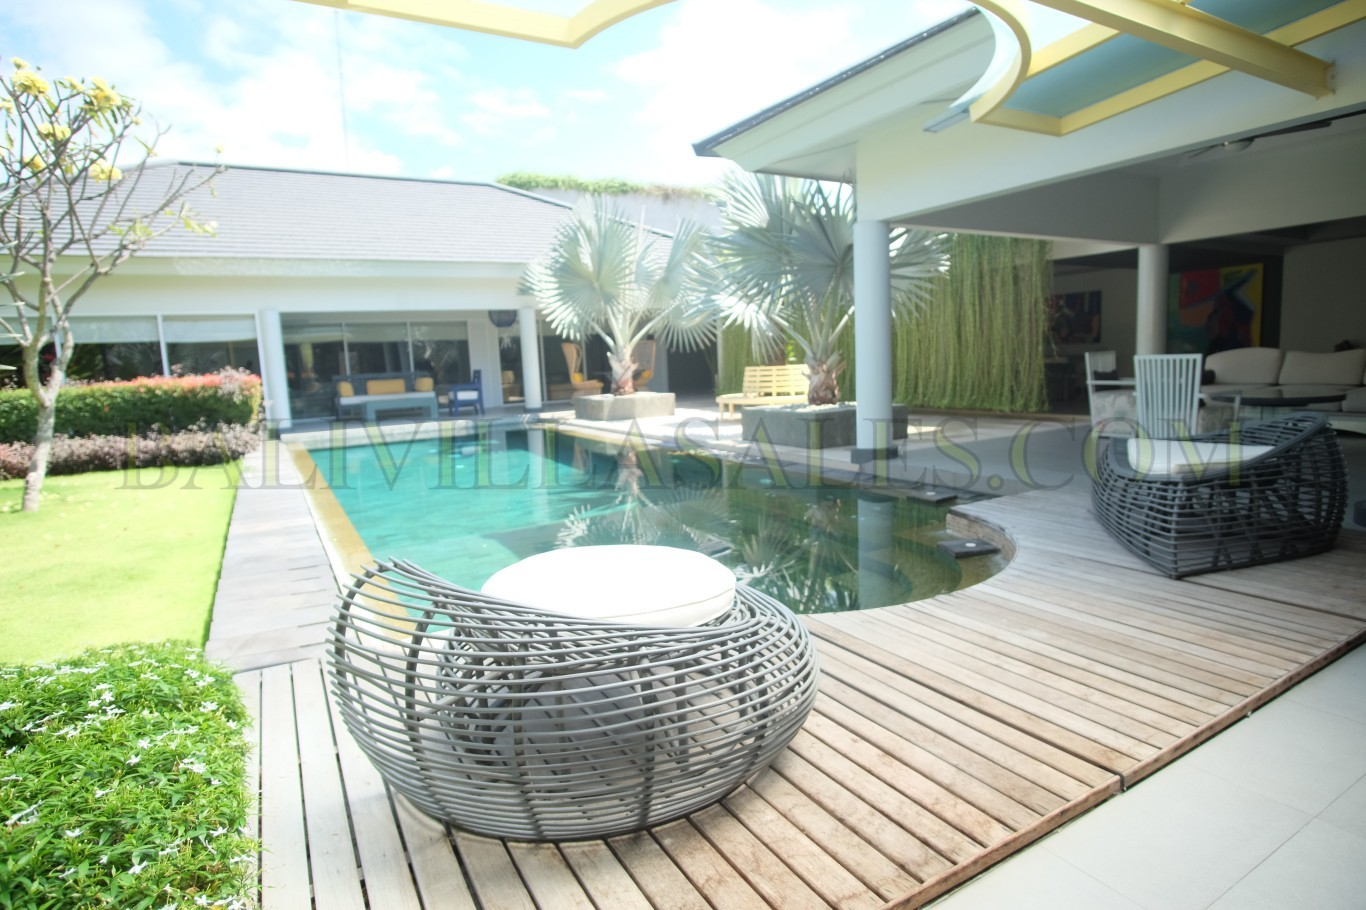 Top Choice Contemporary Villa in Beachside Area of Sanur